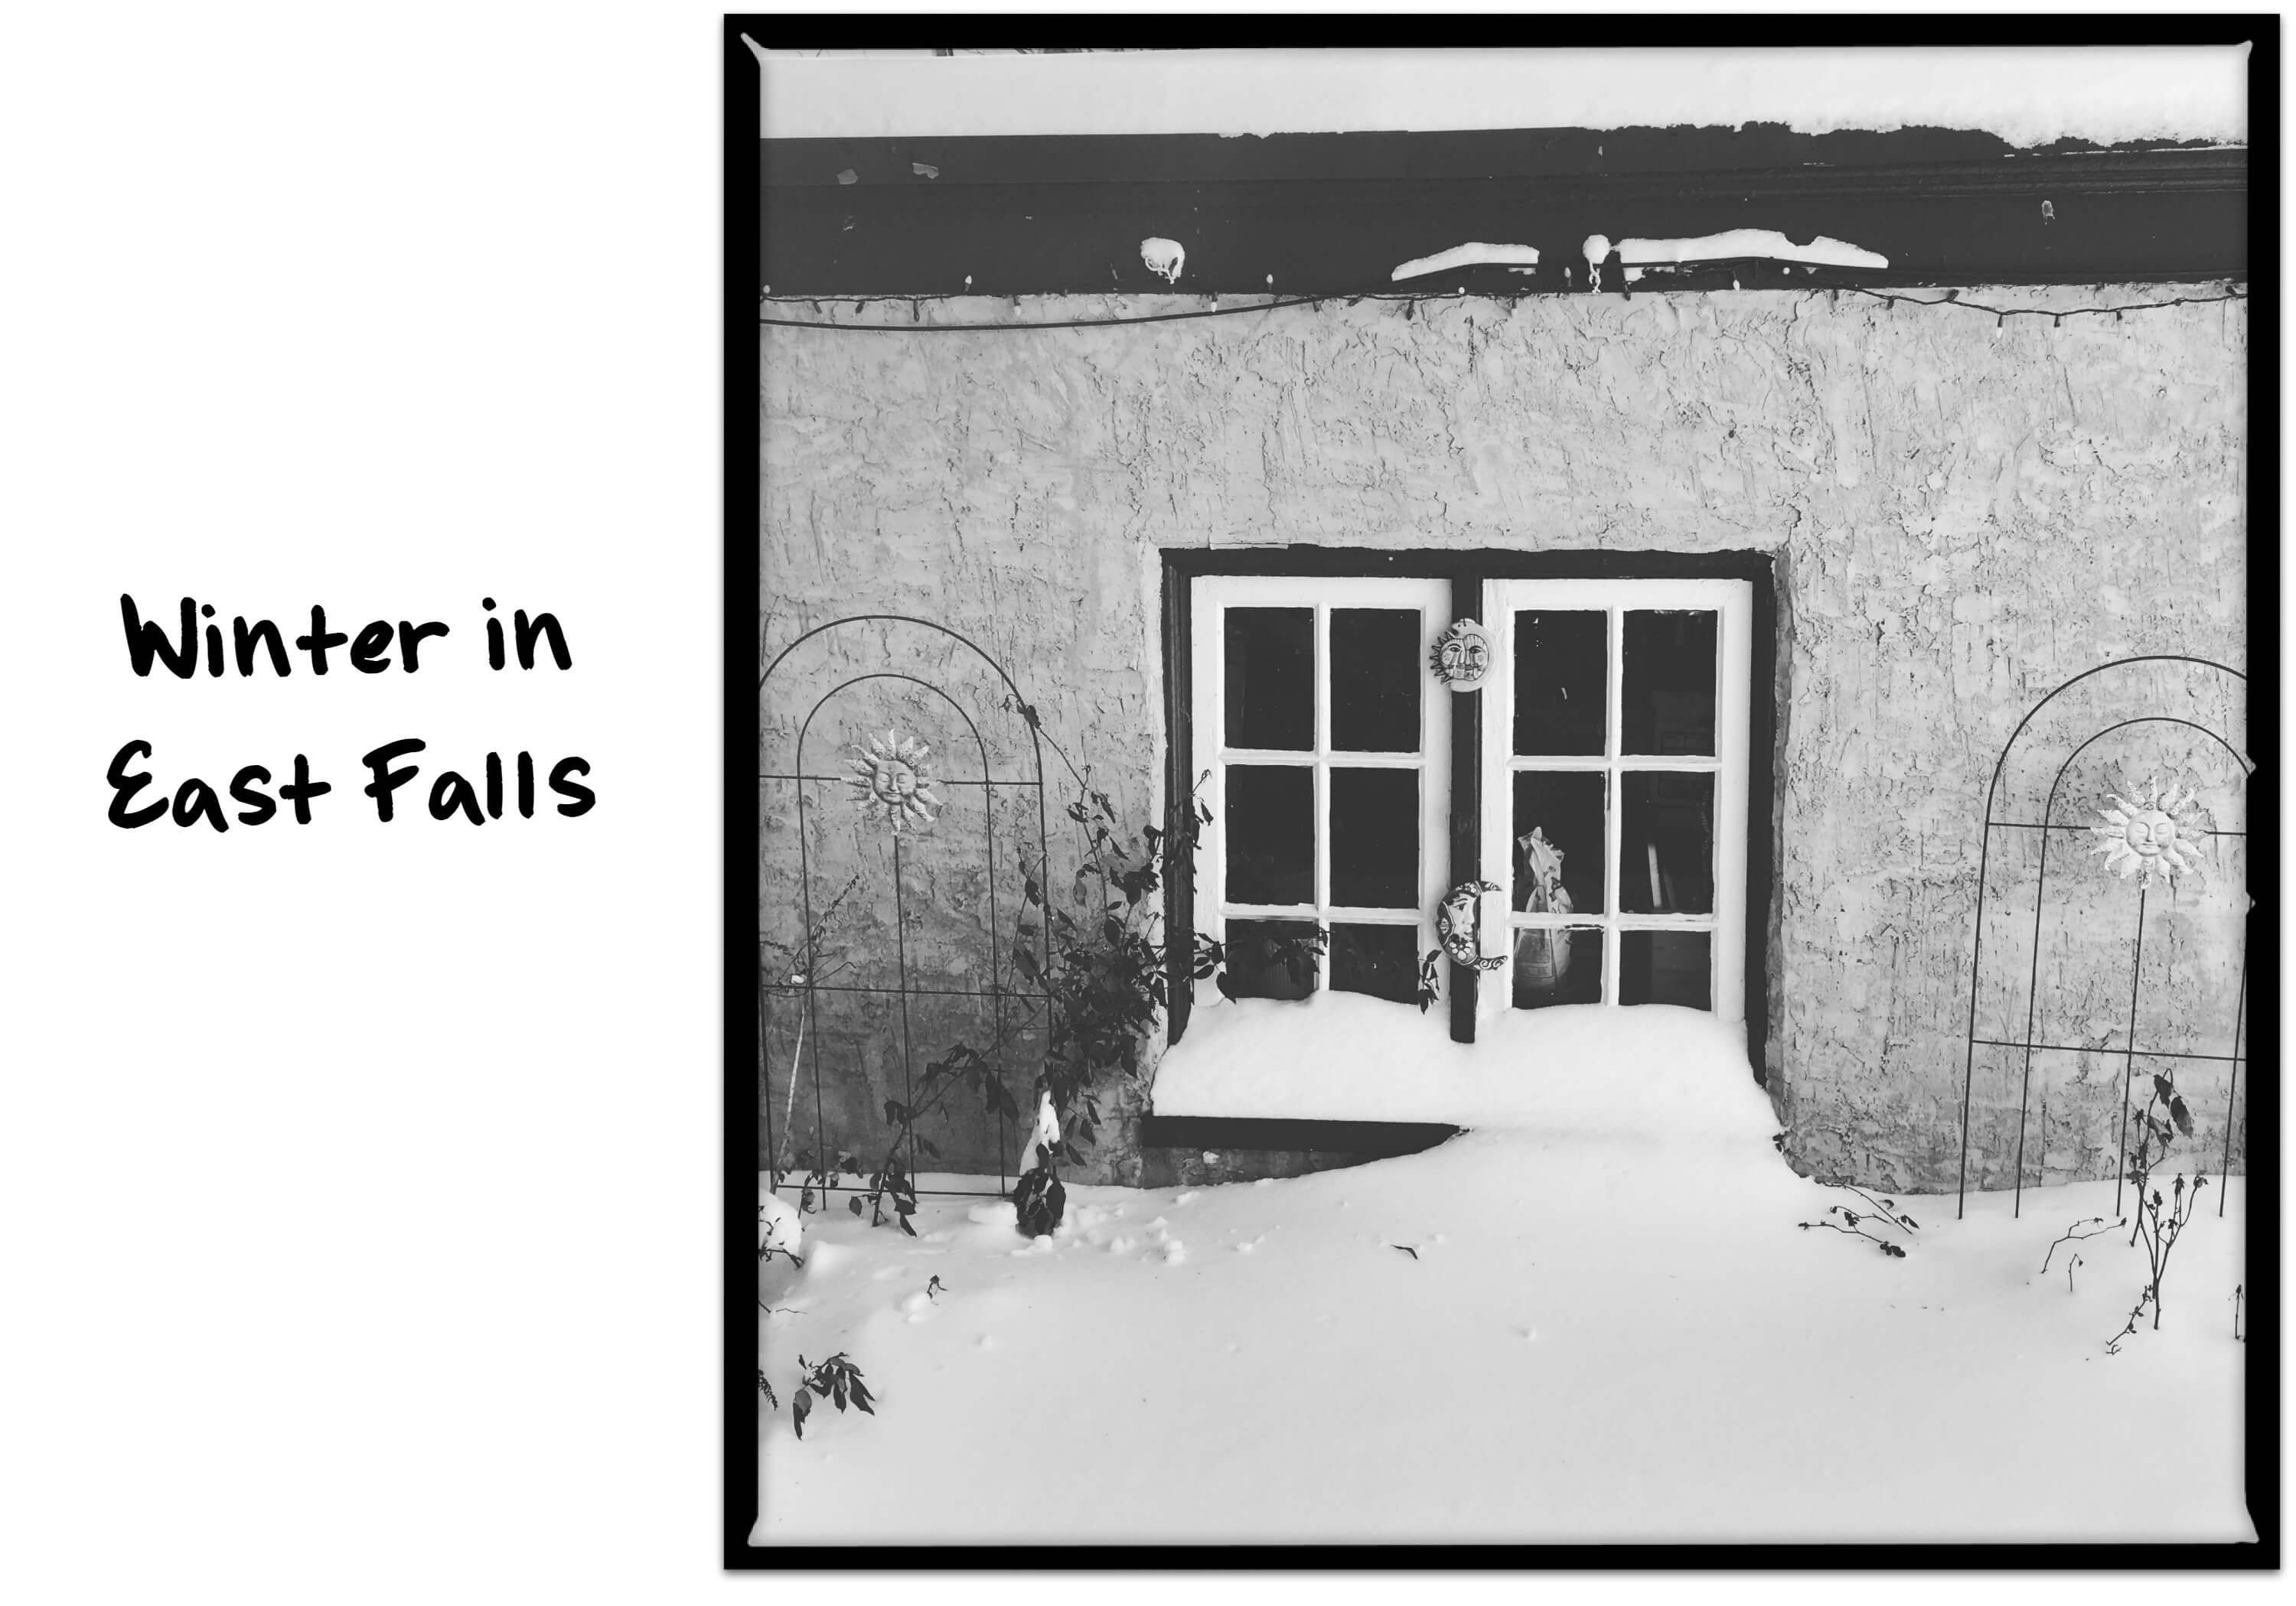 EastFallsLocal Katherine collage winter east falls text